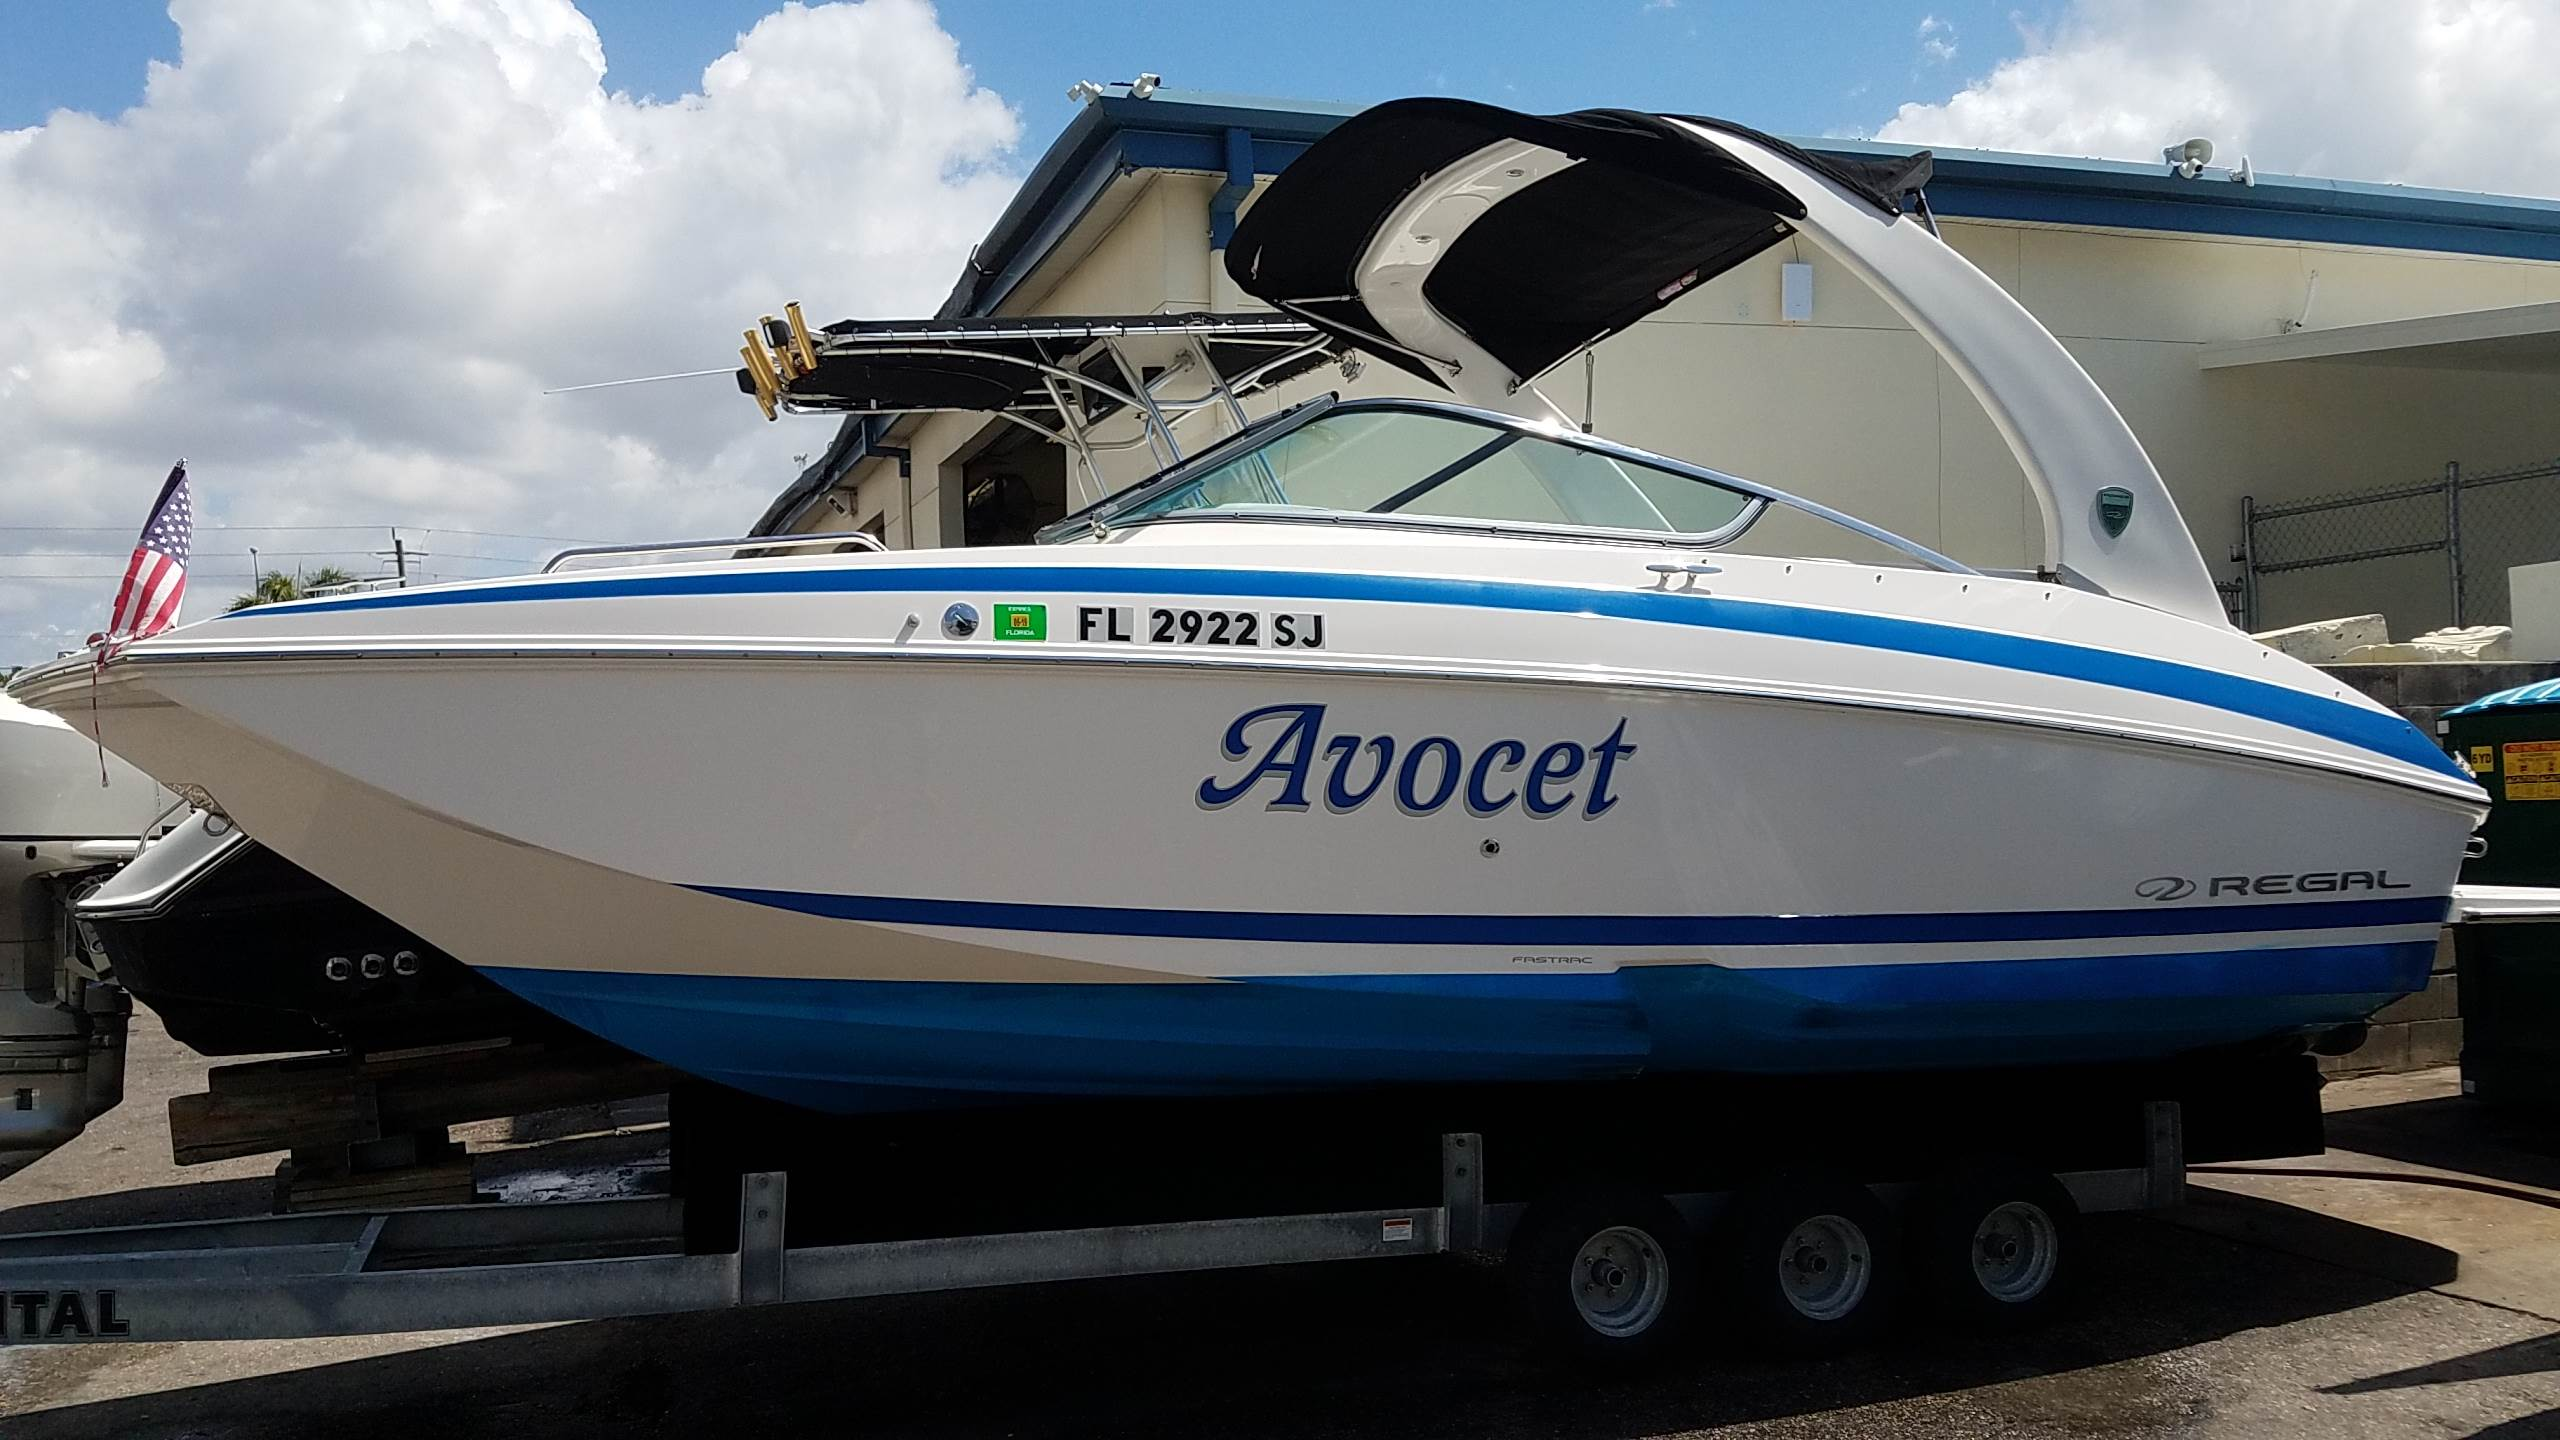 USED 2013 Regal Deck Boat 24 FasDeck - Sara Bay Marina